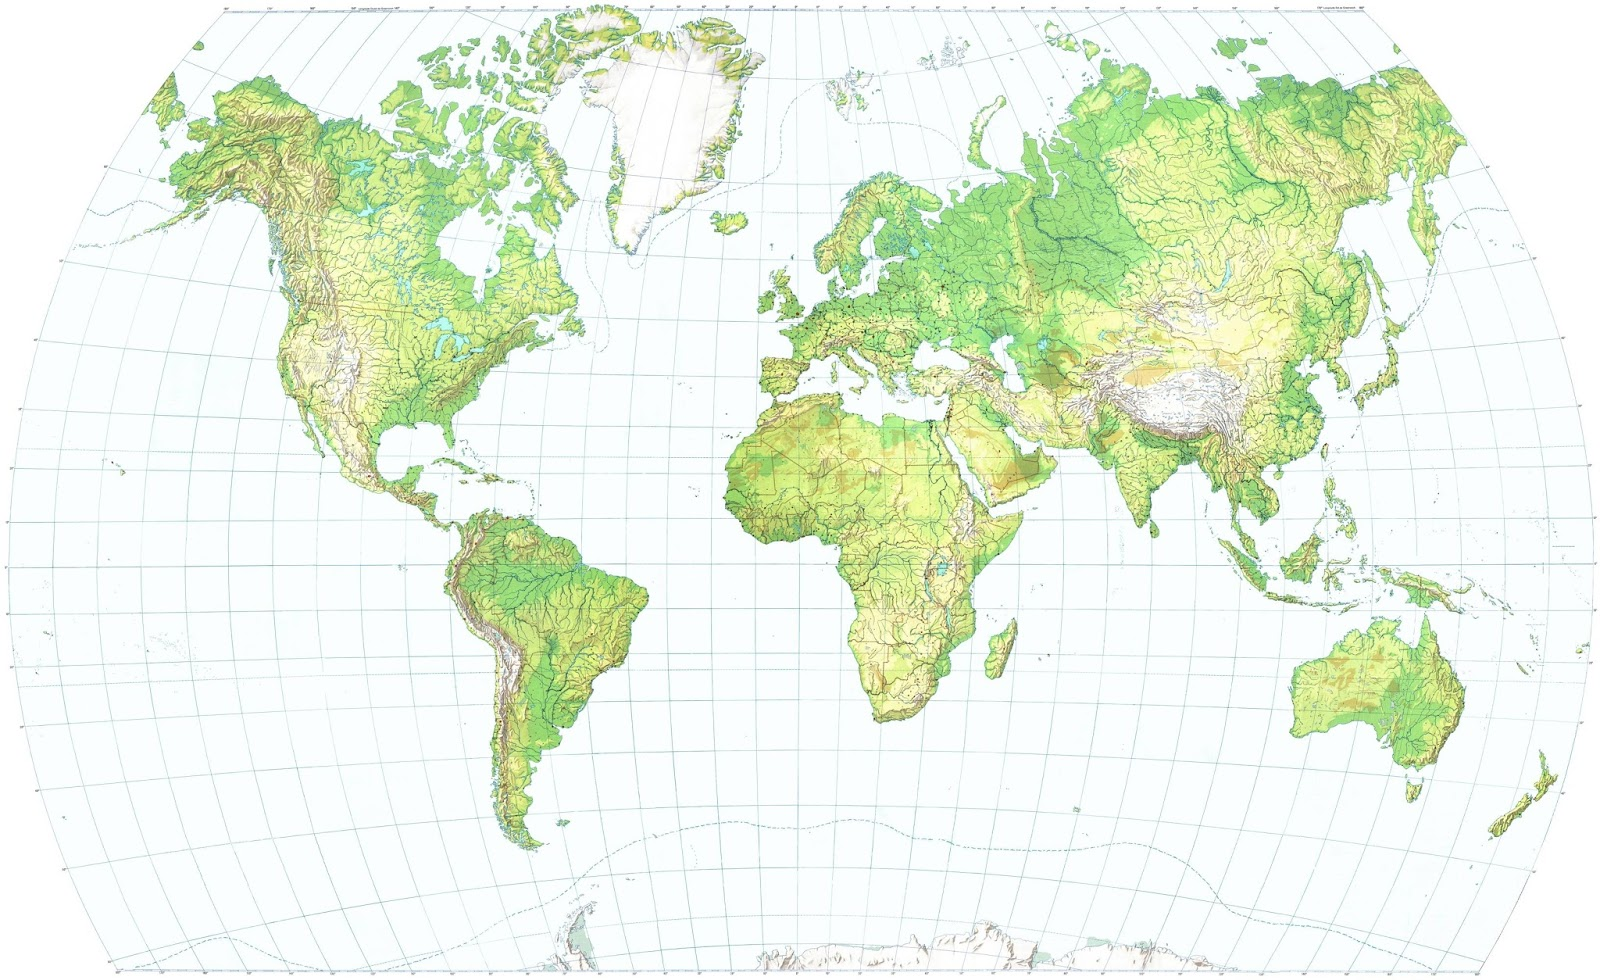 World map hd wallpapers for desktop pictures free hd wallpapers beautiful world map hd wallpapers gumiabroncs Gallery